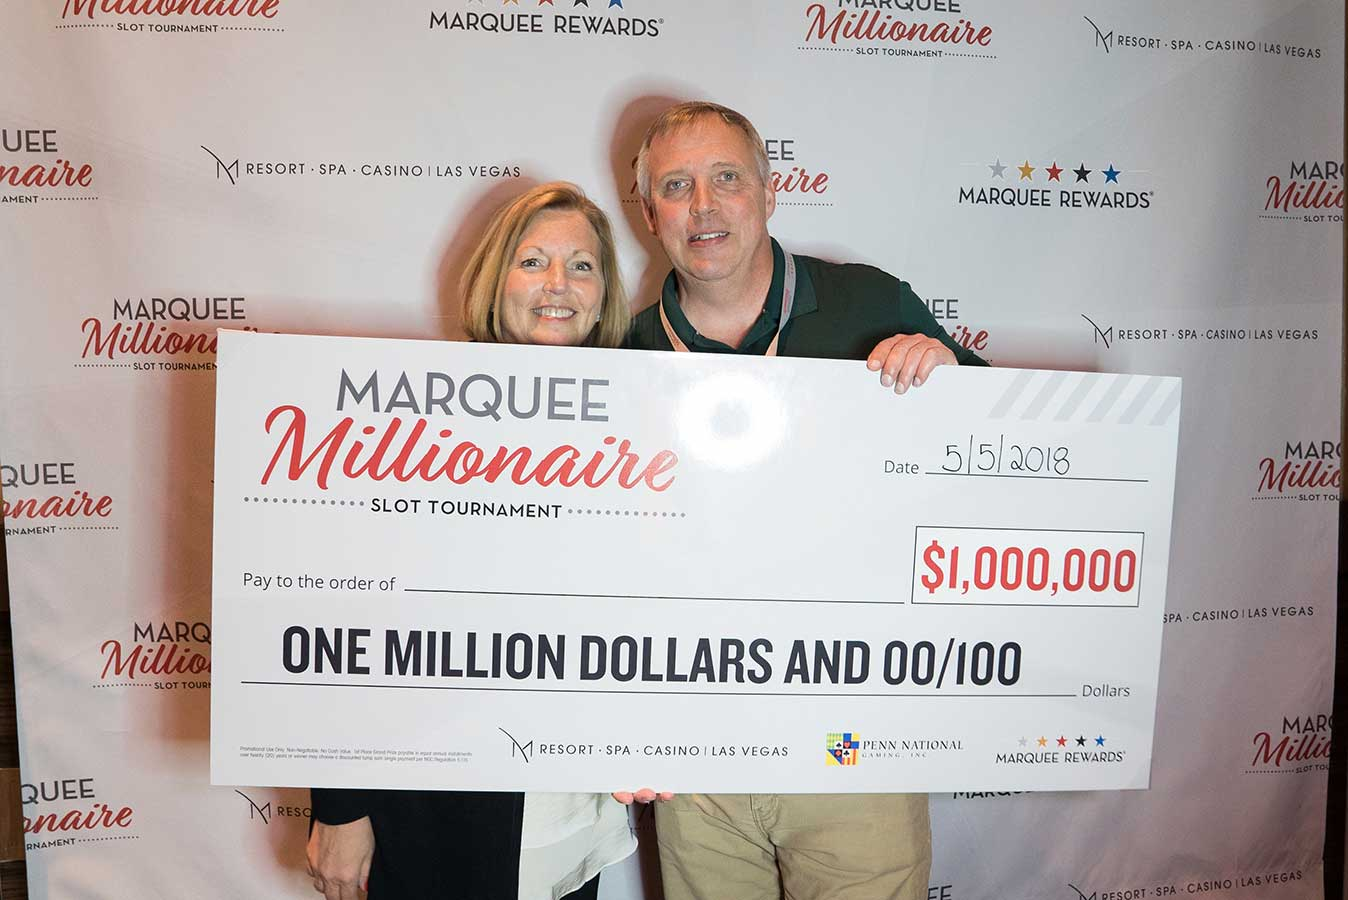 Indiana Man Wins $1 Million